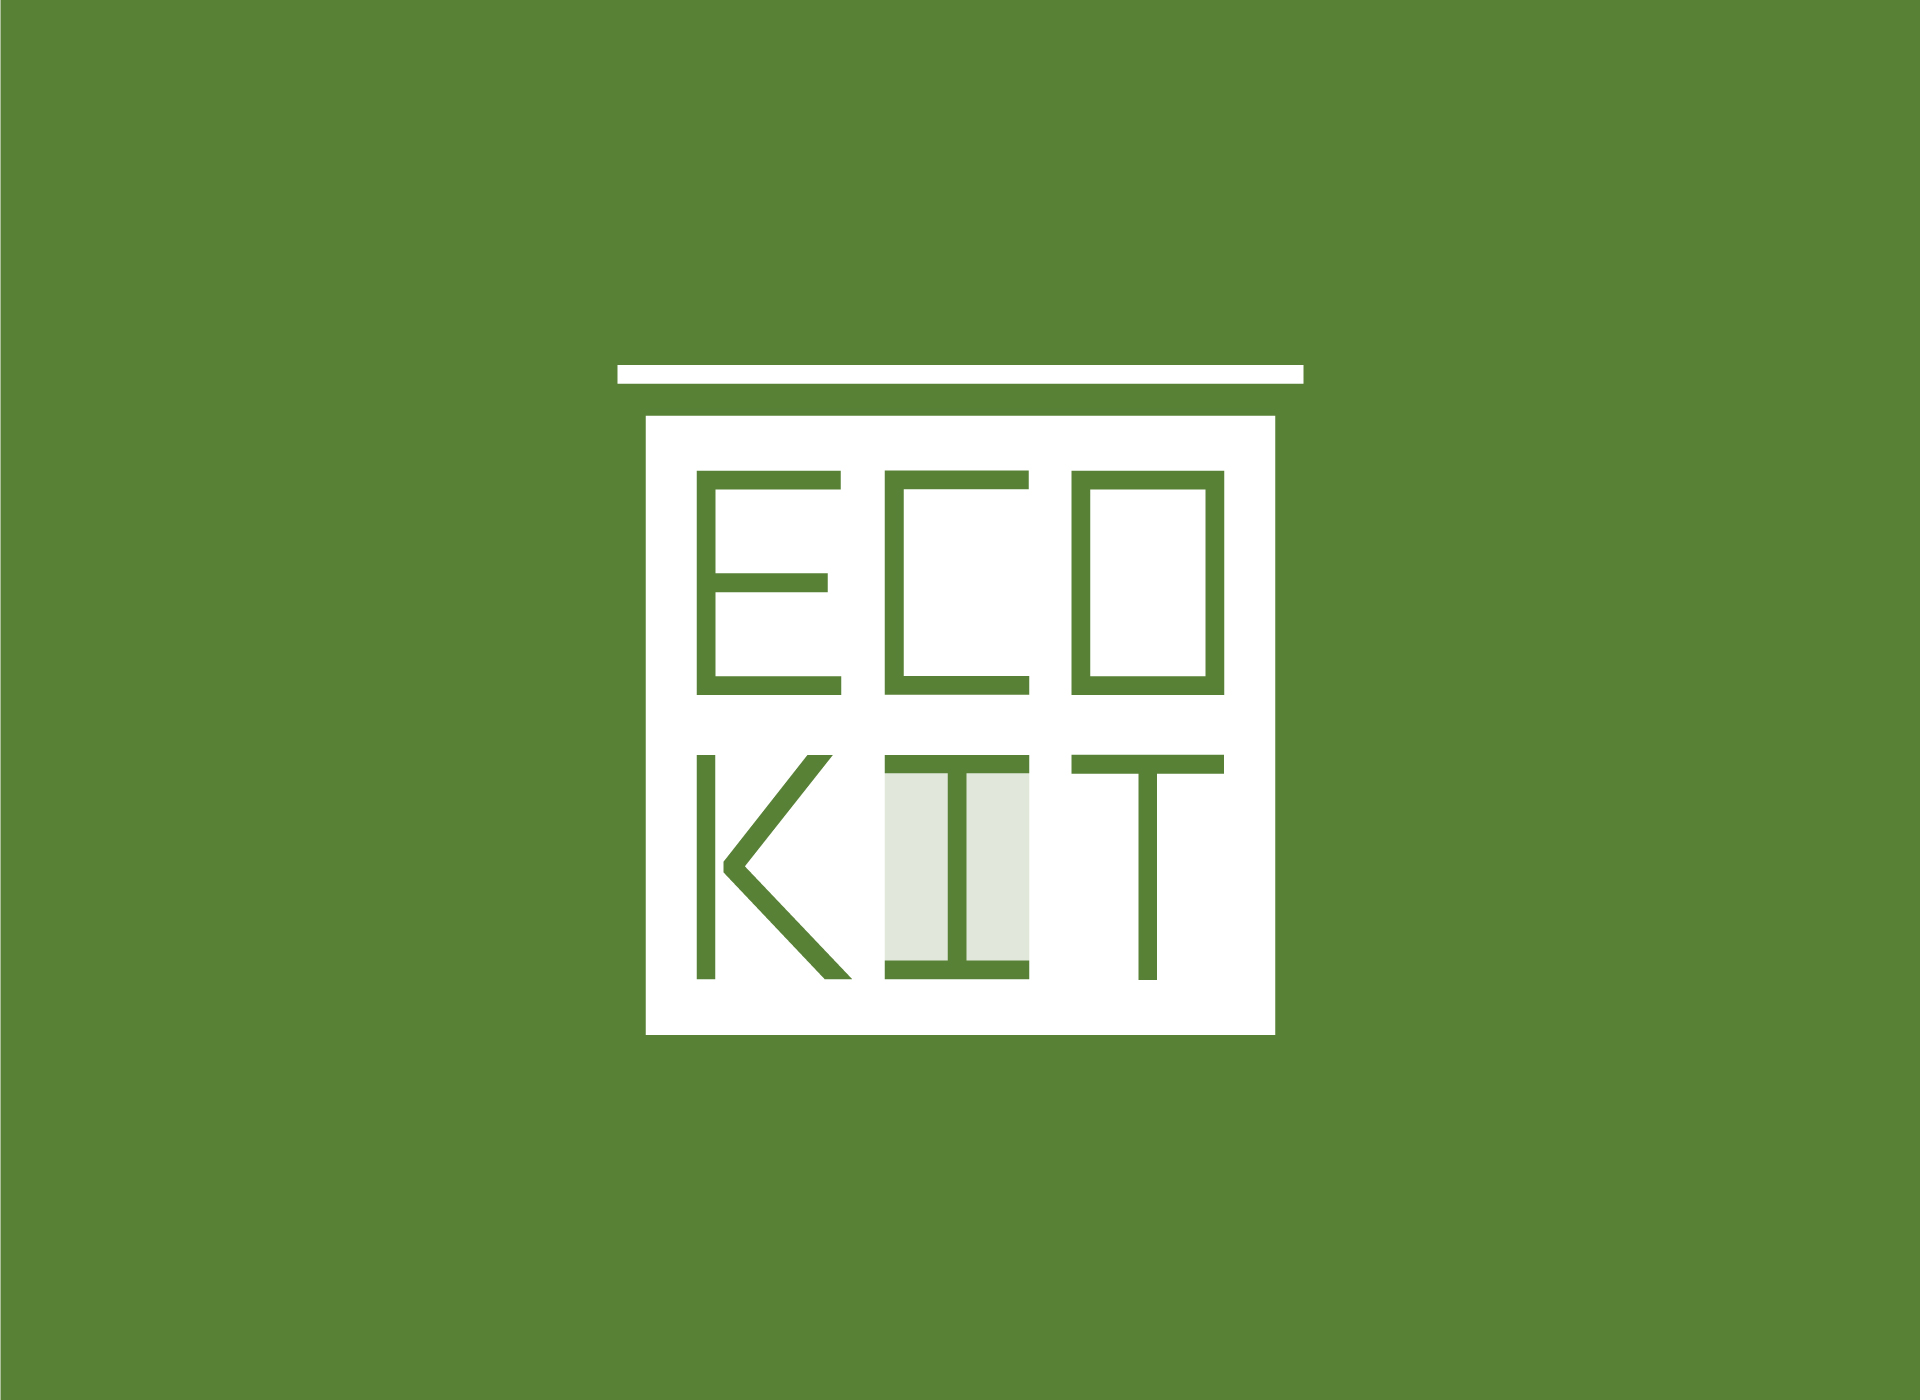 logo design ecokit real estate by inoveo